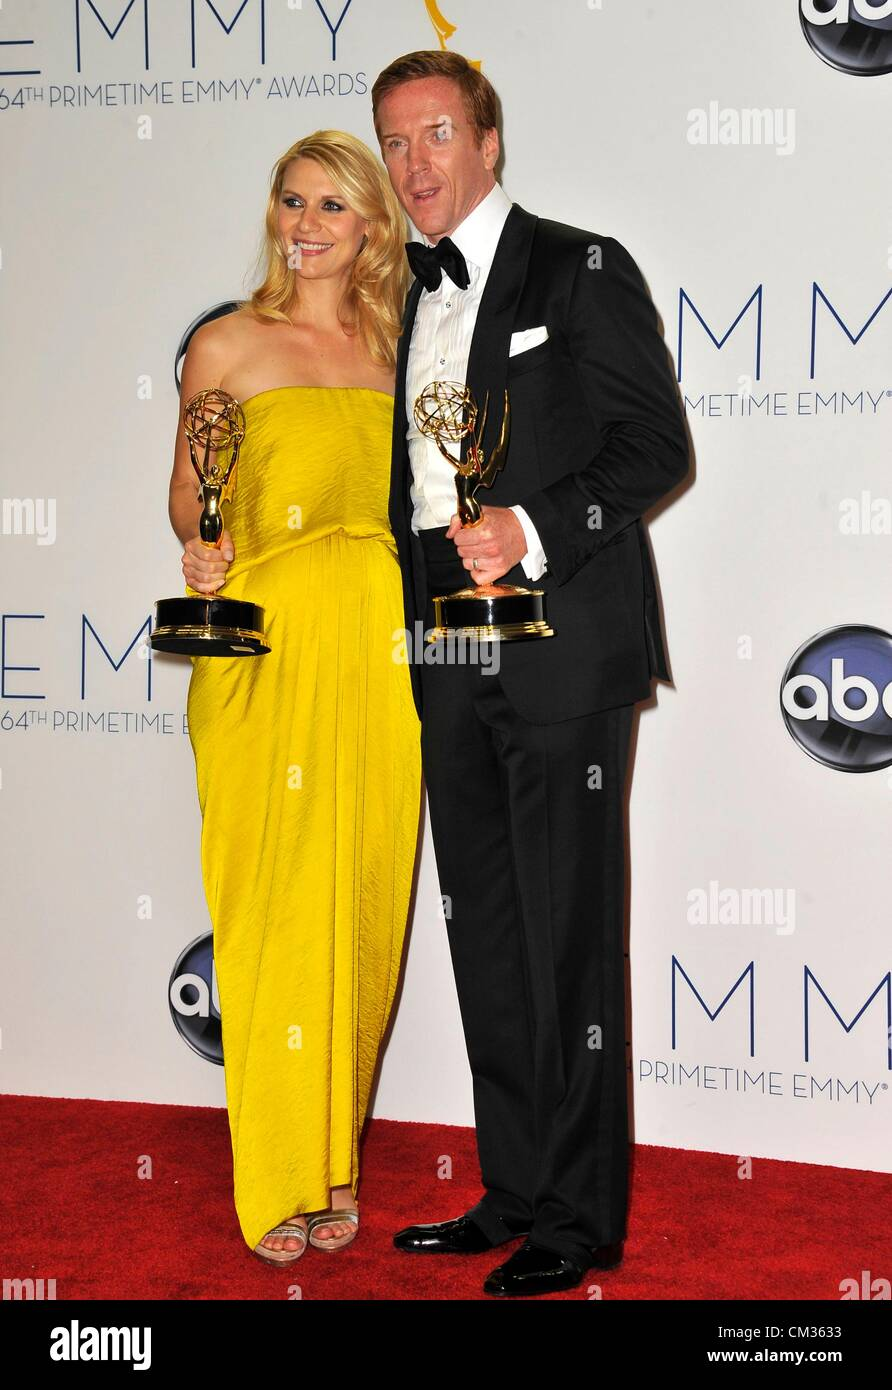 Claire Danes Damian Lewis inpress room64th Primetime Emmy Awards - PRESS ROOM Nokia Theatre L.A LIVE Los Angeles - Stock Image